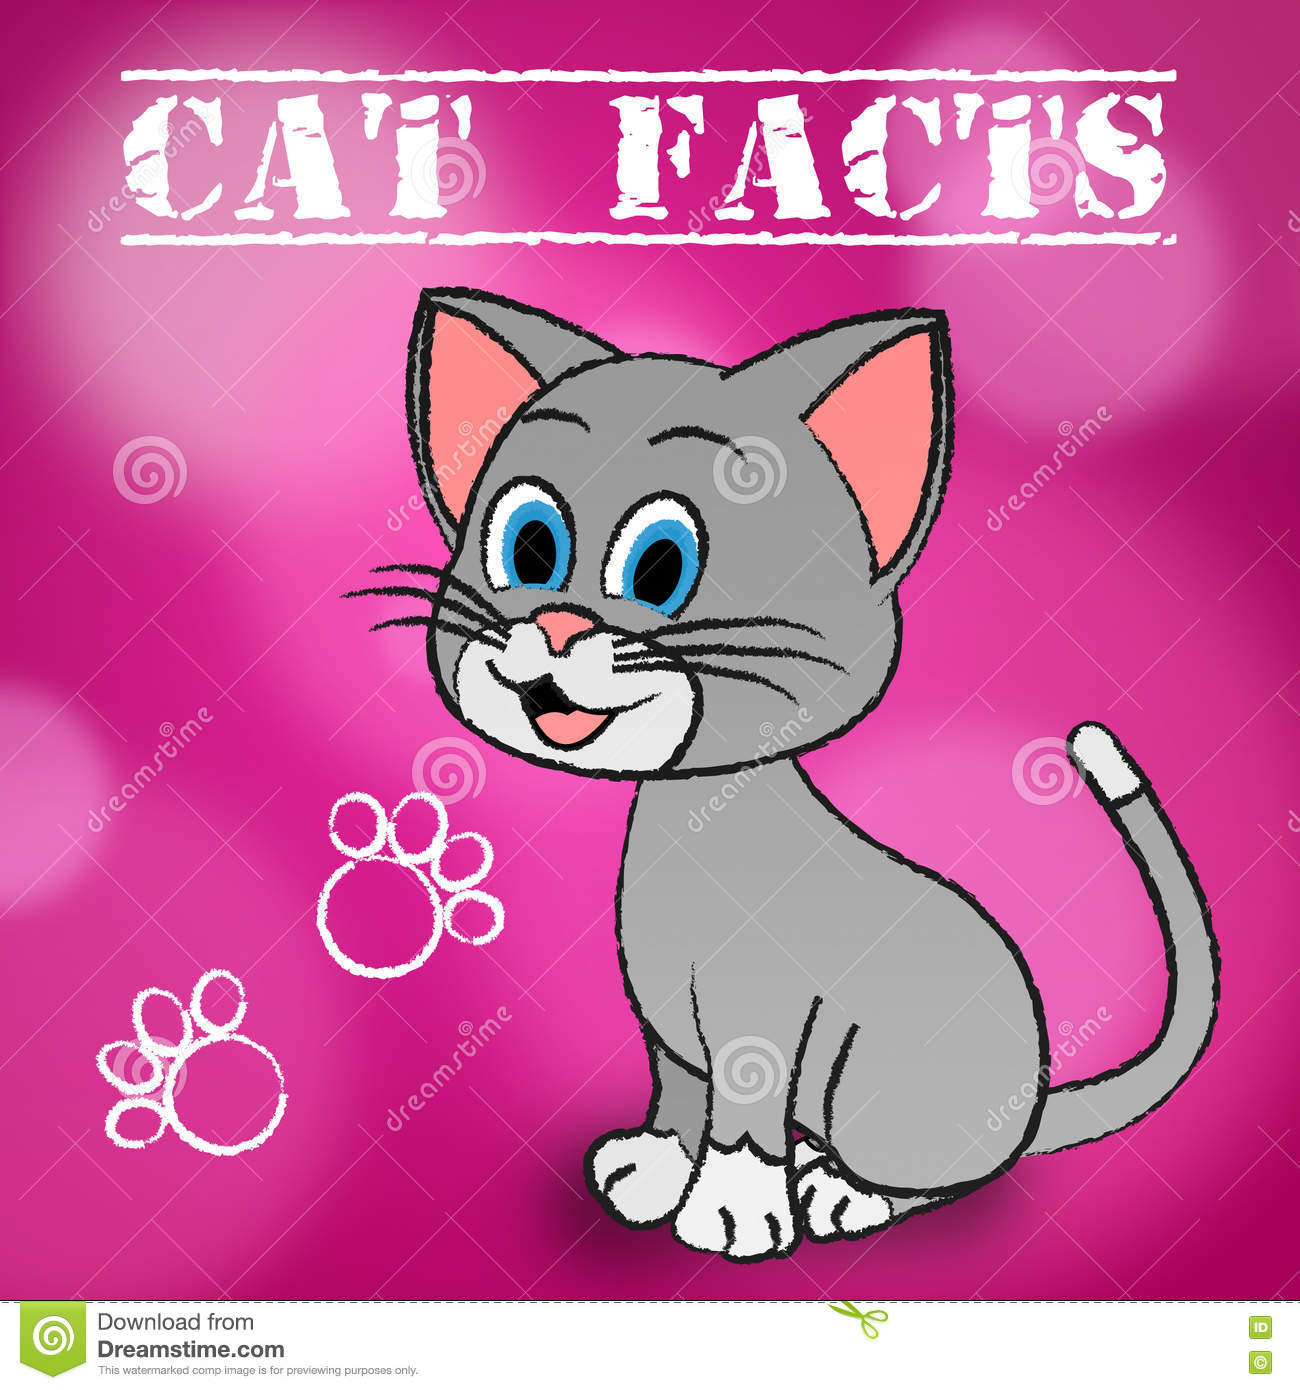 Cat Facts Indicates Details Kitty y animales domésticos